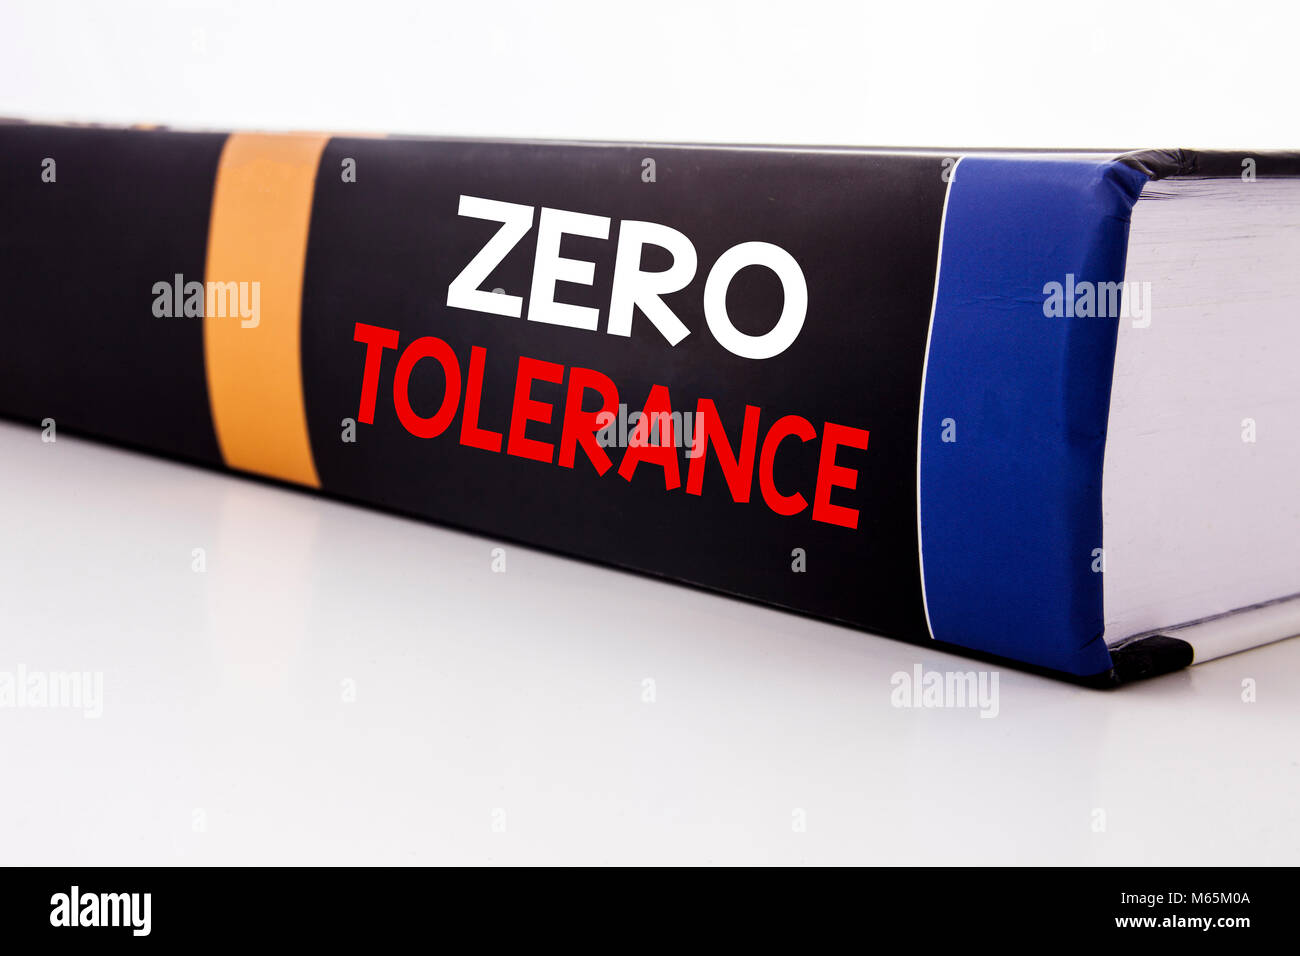 Conceptual hand writing text caption inspiration showing Zero Tolerance. Business concept for Policy For Punishment - Stock Photo